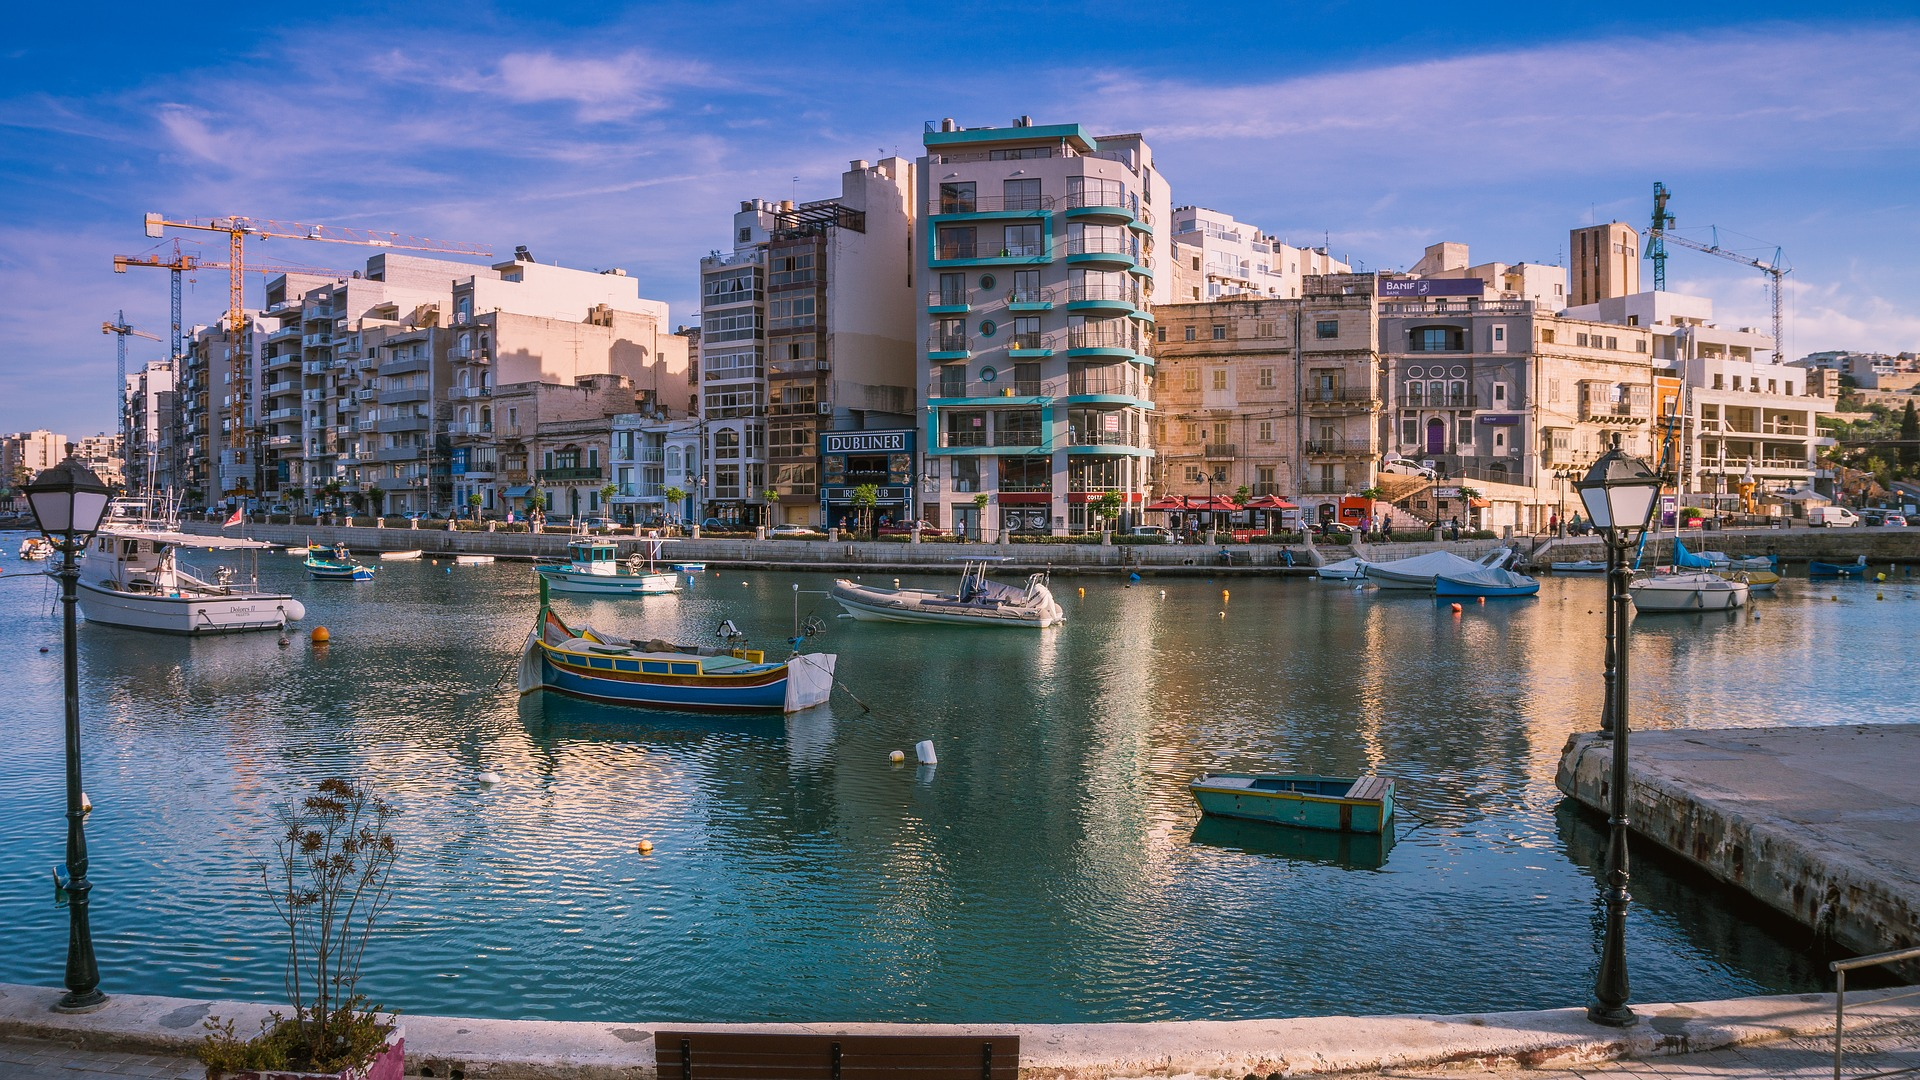 Spinola - St Julians